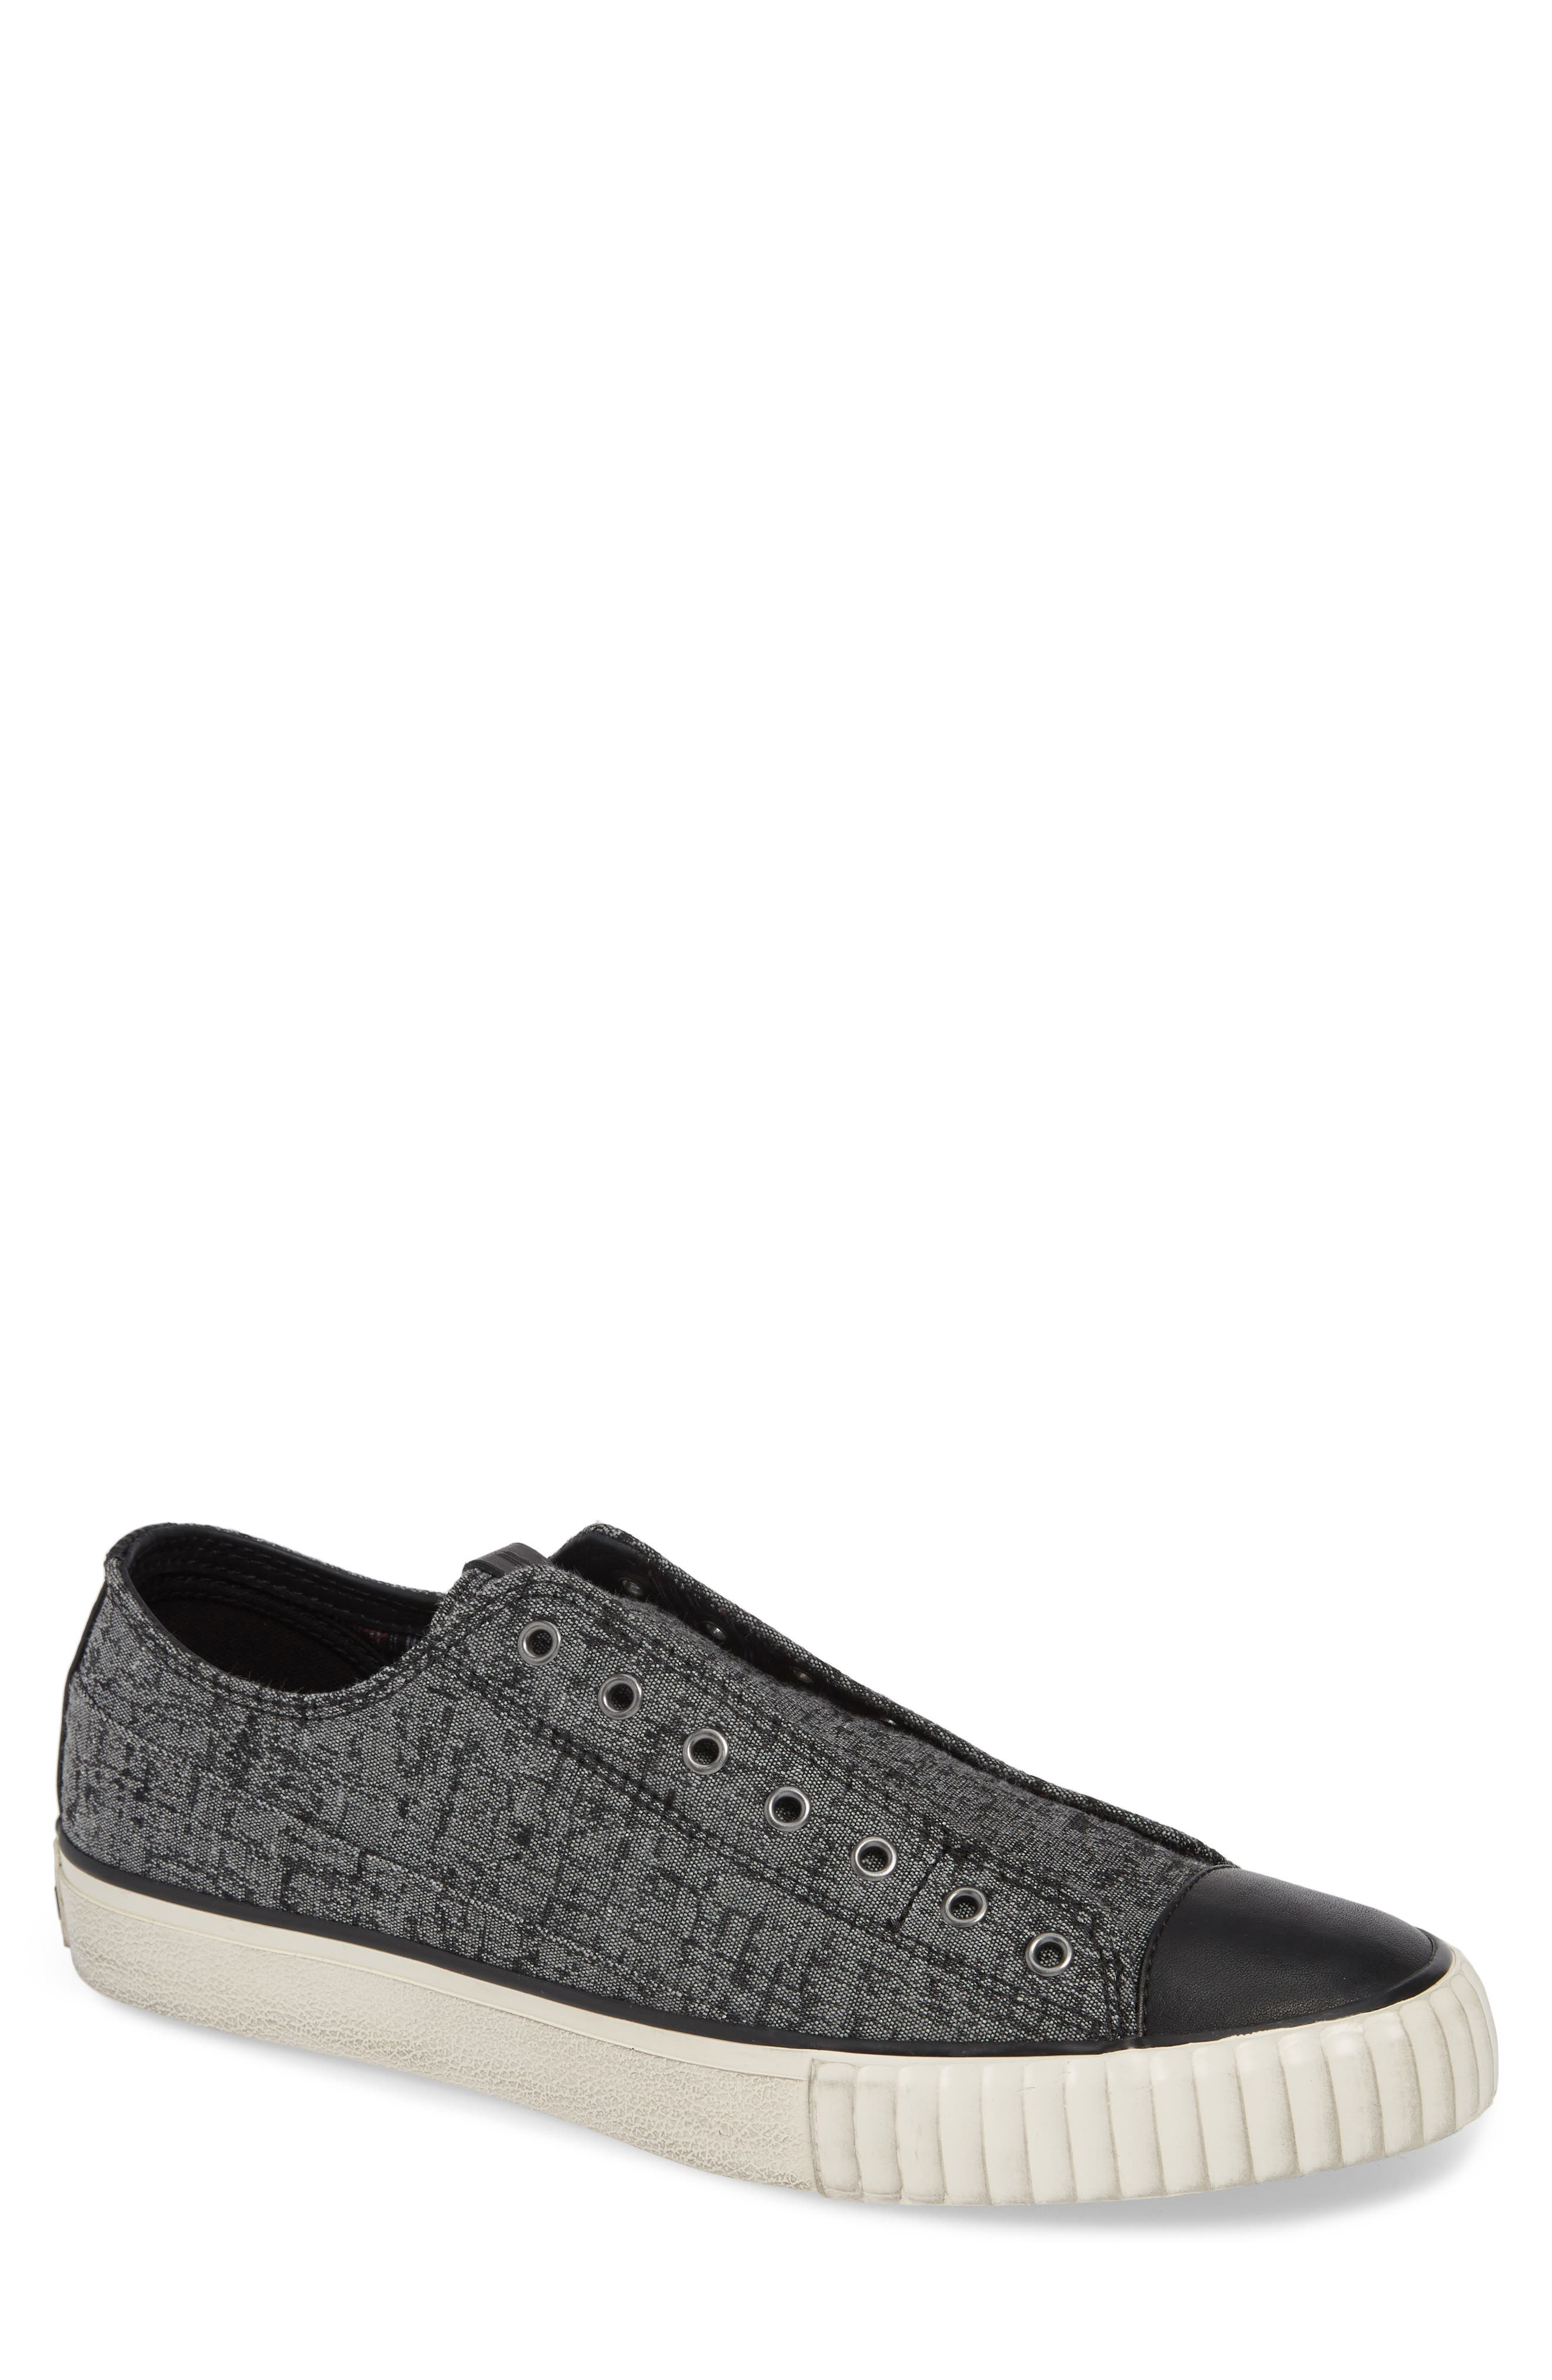 BOOTLEG BY JOHN VARVATOS John Varvatos Star USA Bootleg Laceless Sneaker, Main, color, STONE GREY CANVAS